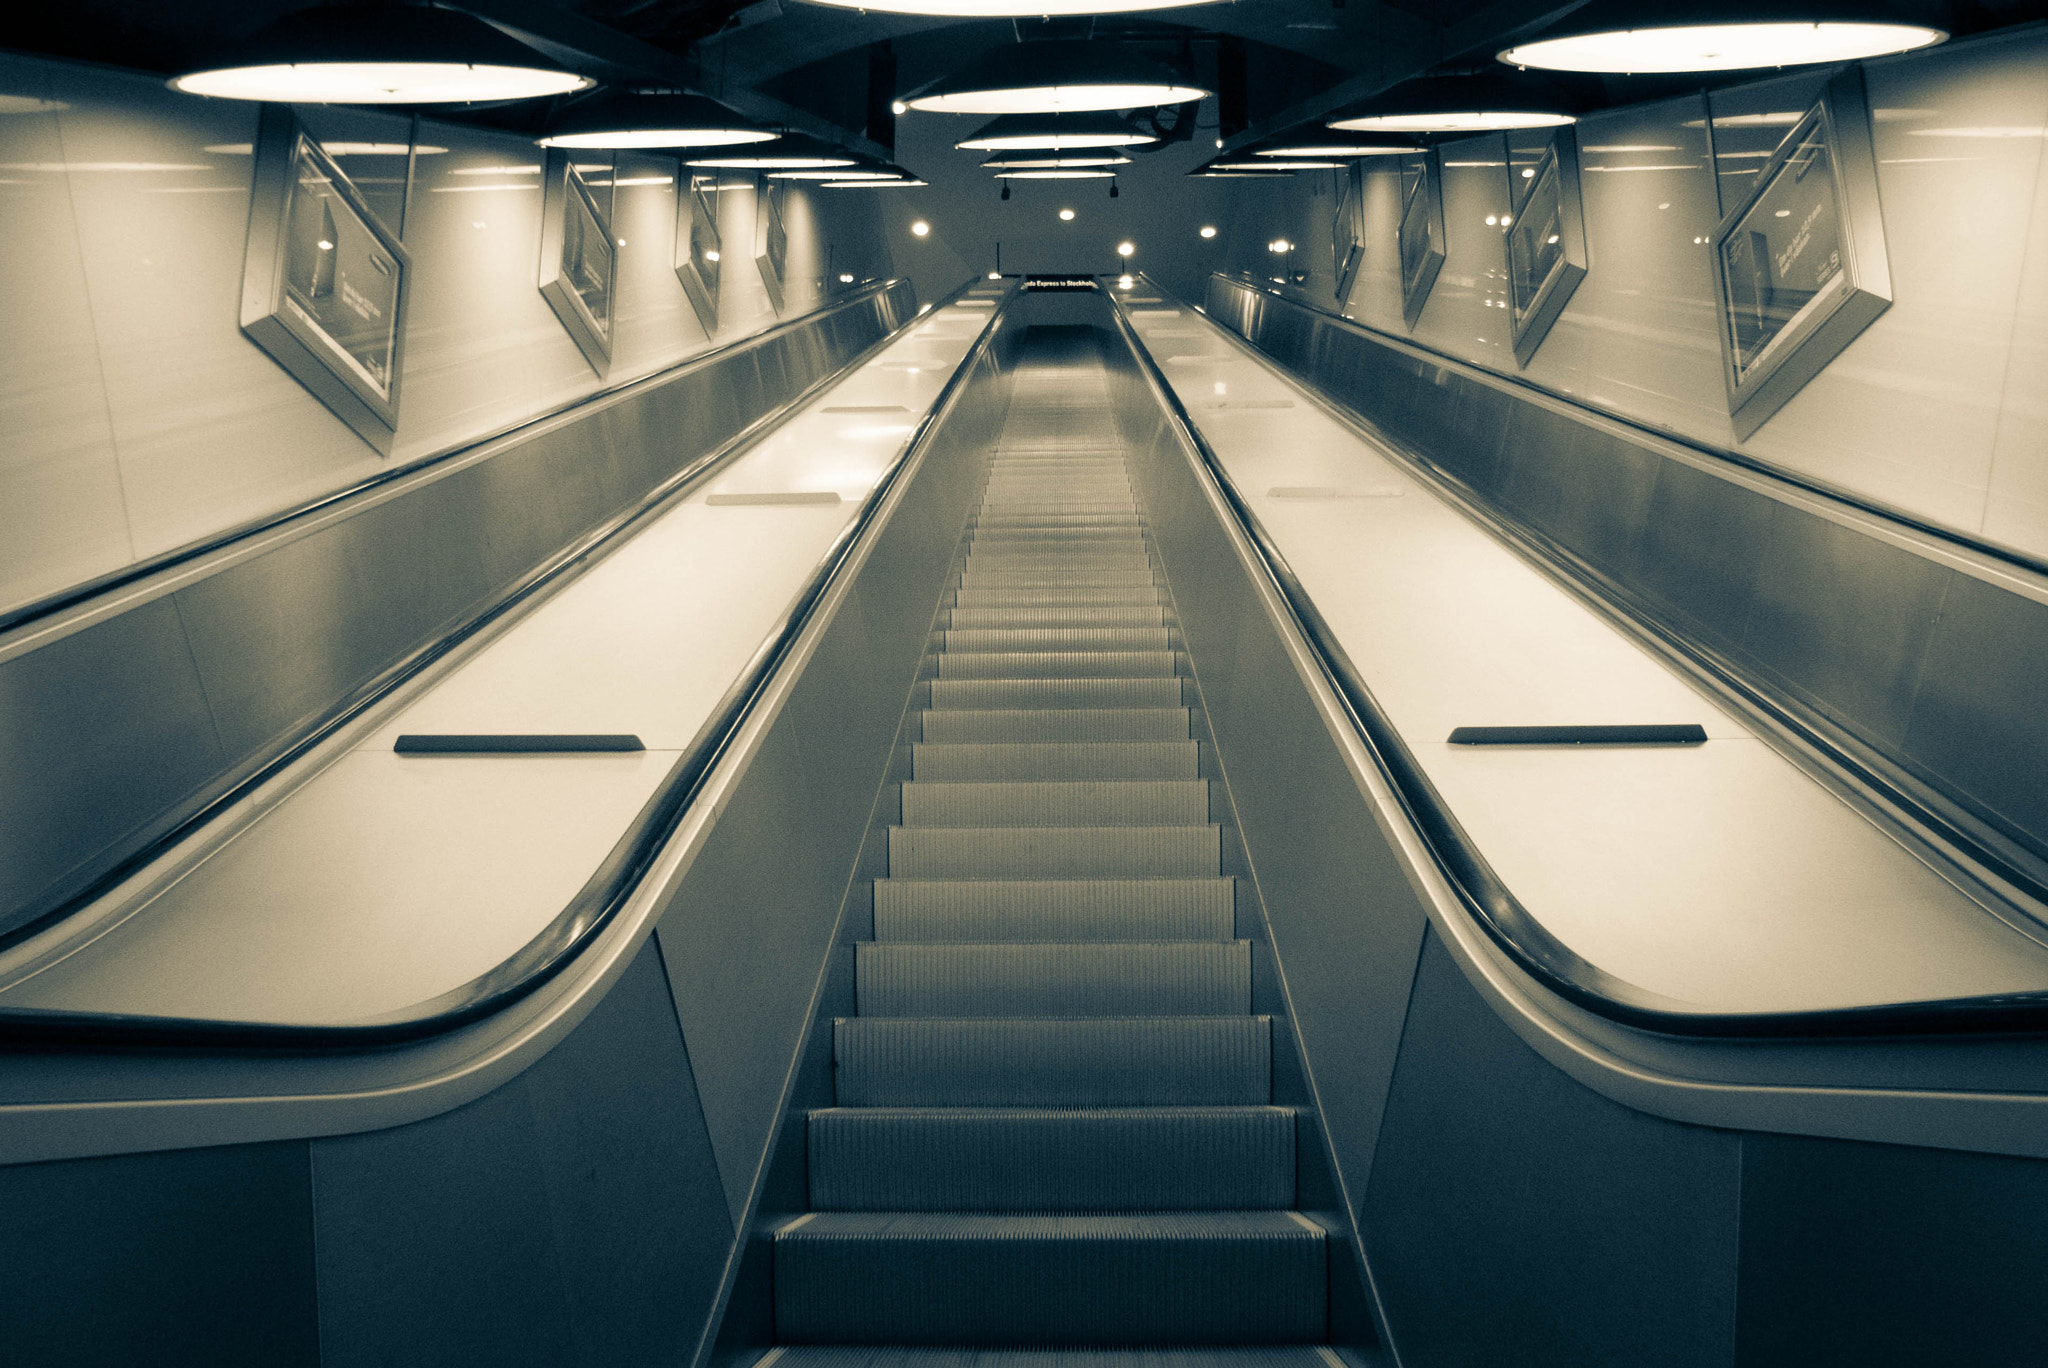 Photograph Upwards or downwards by Hector Yep Lona on 500px